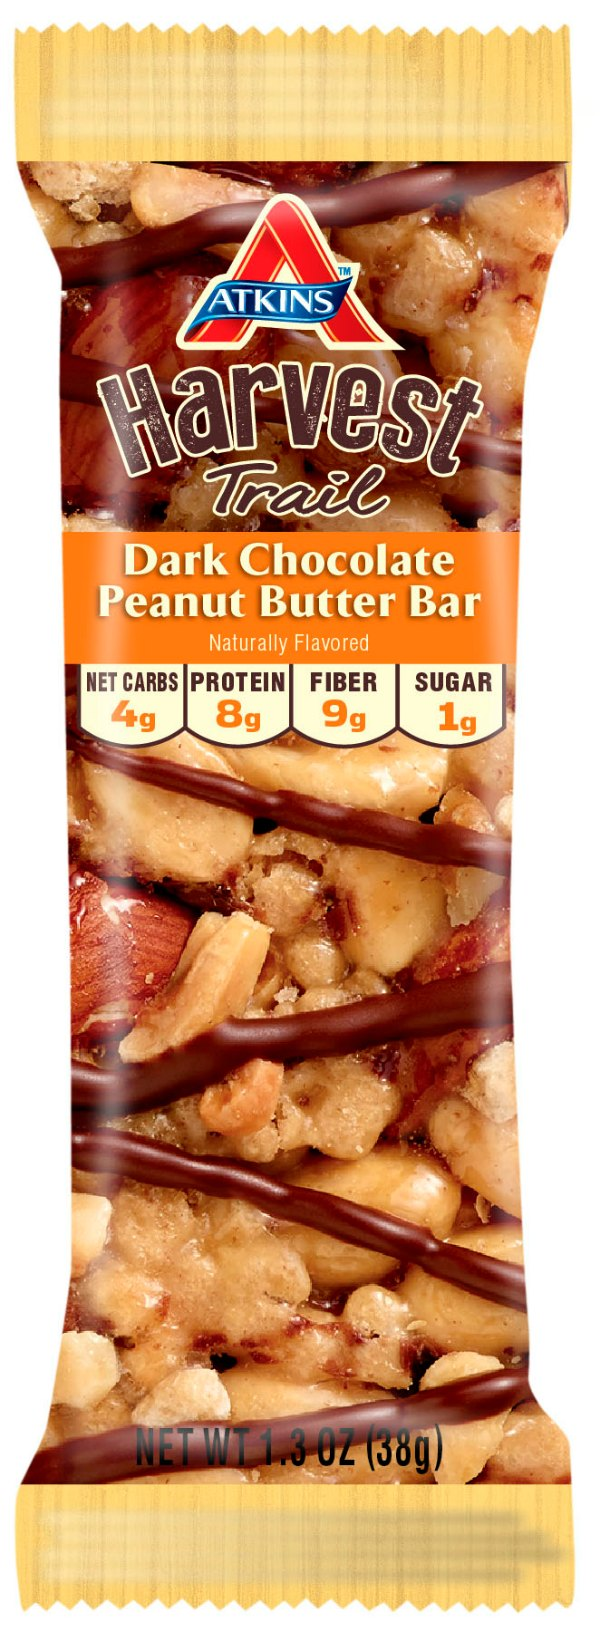 Atkins Harvest Dark Chocolate Peanut Butter Bar